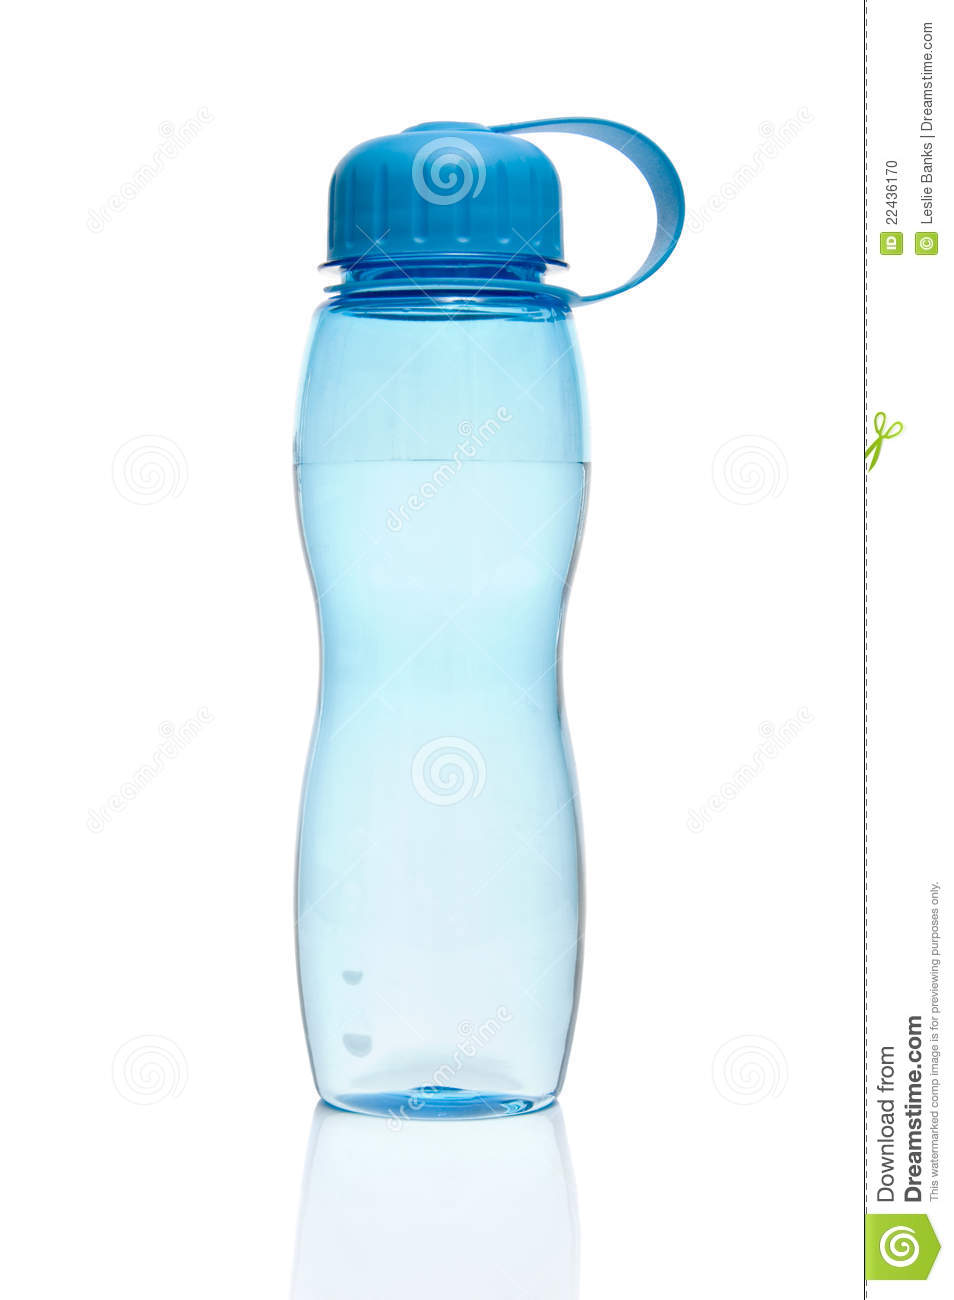 Reusable Water Bottle Clip Art Images & Pictures - Becuo